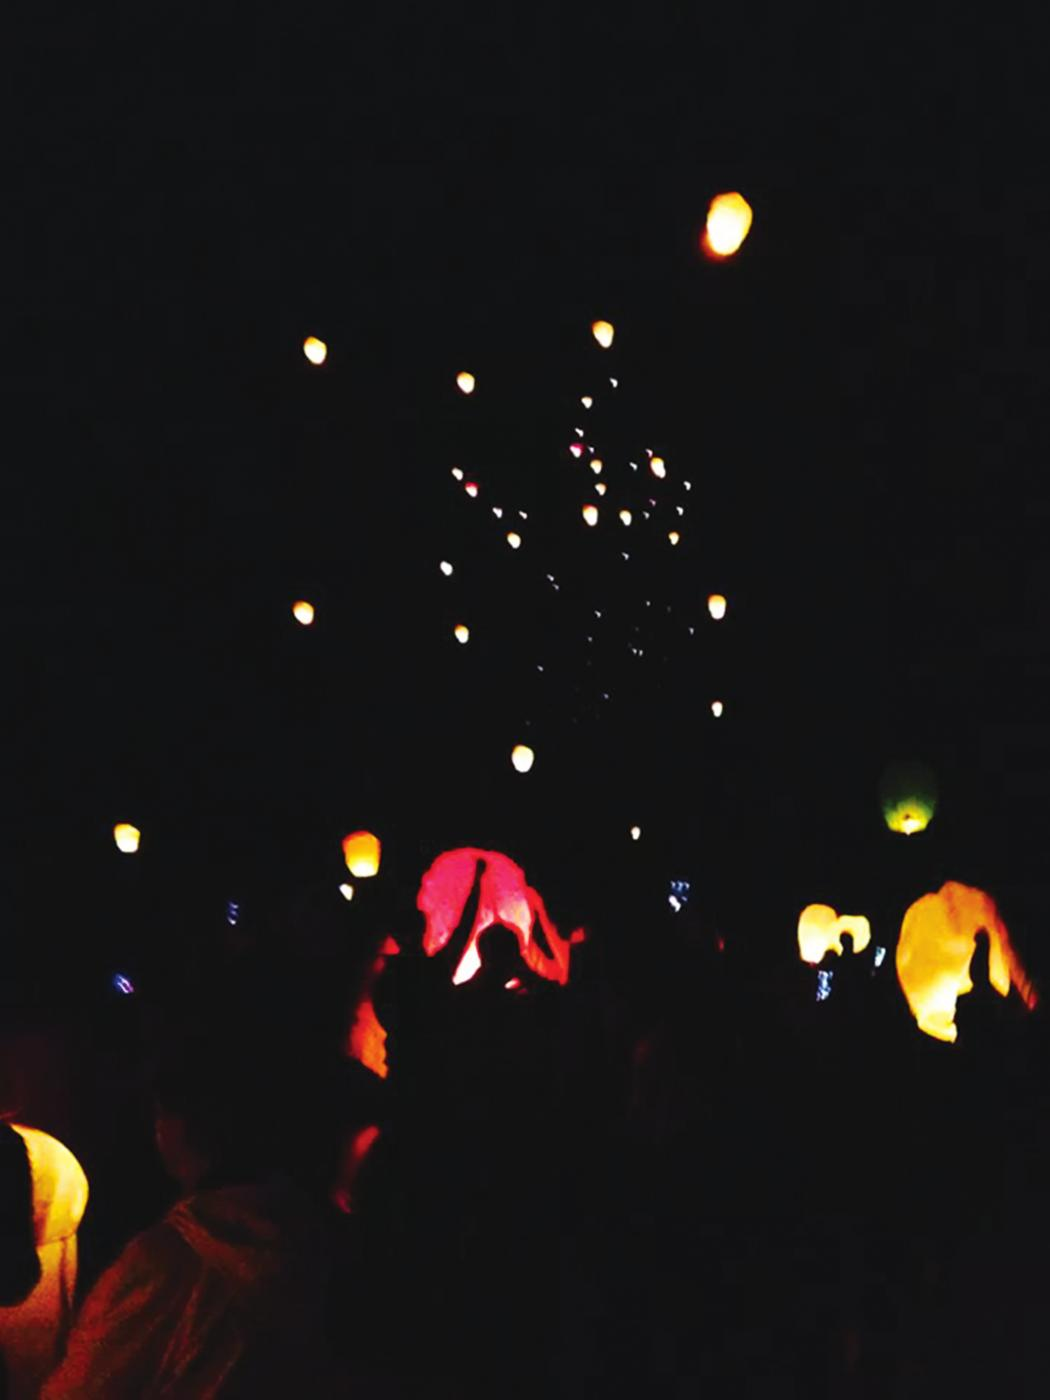 Friends of the late sophomore William Michael Felten release paper lanterns at a service in his honor at his hometown of Saginaw, Michigan.